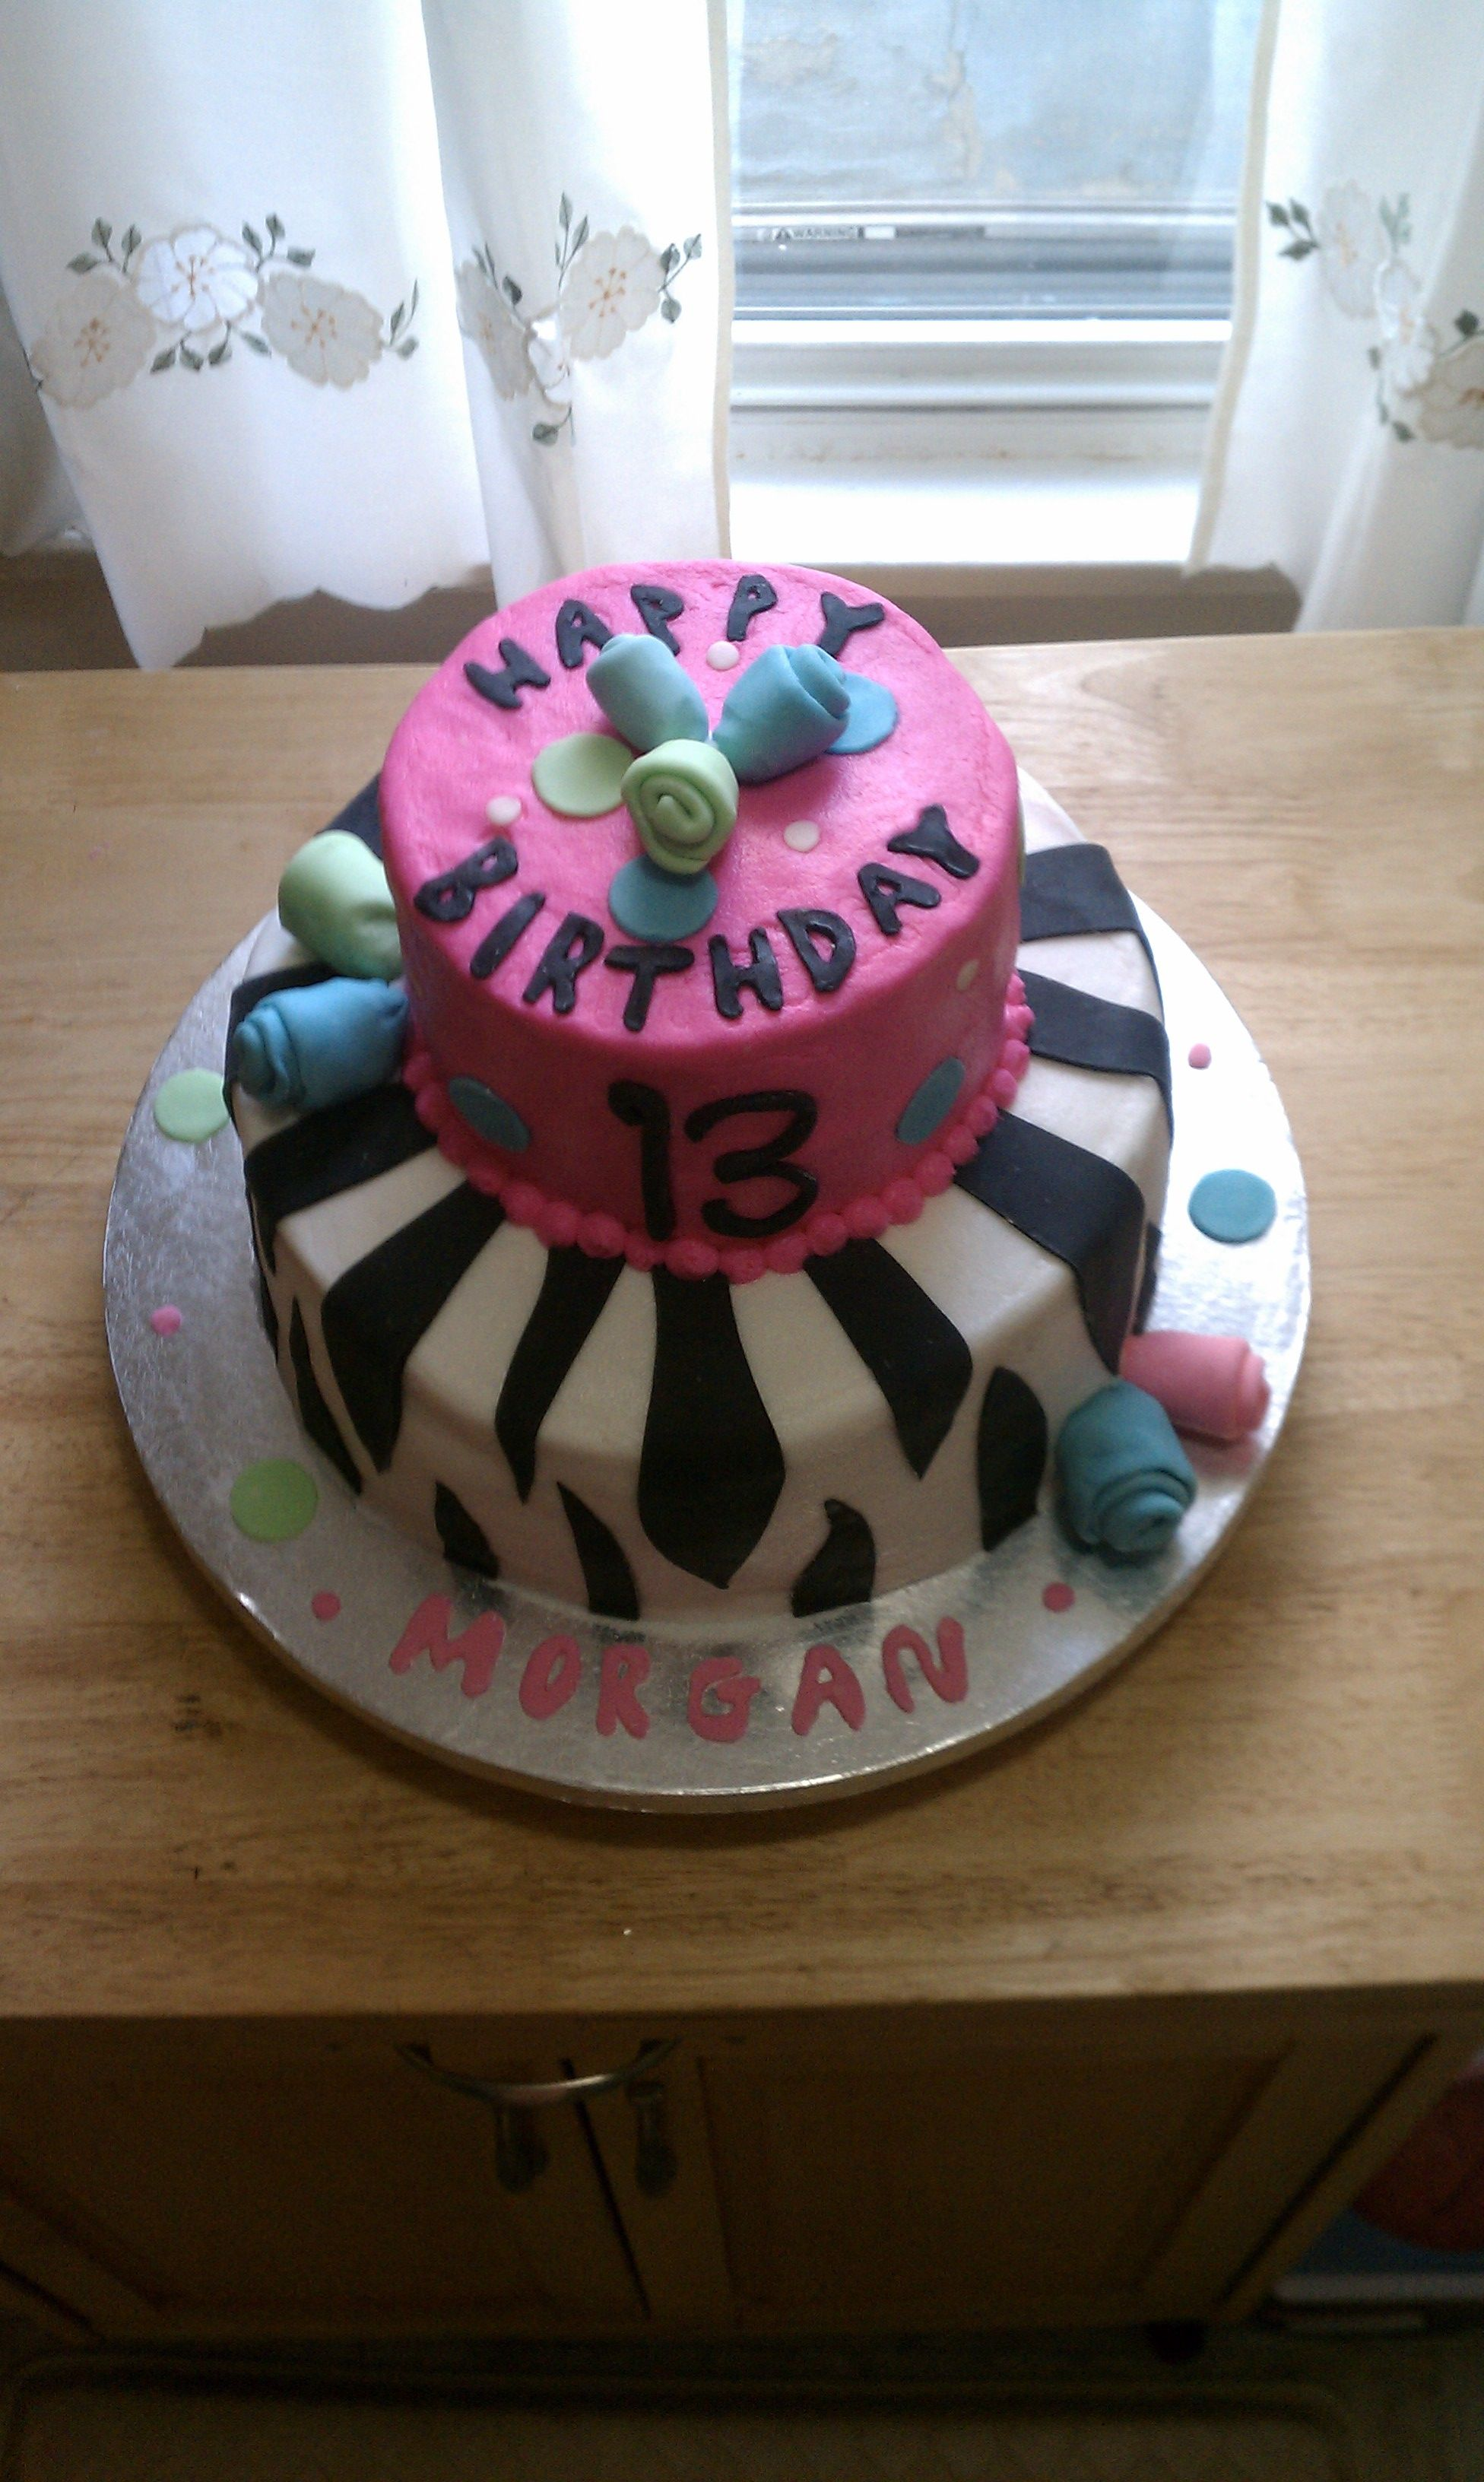 14+ 13th birthday cake decorations ideas in 2021